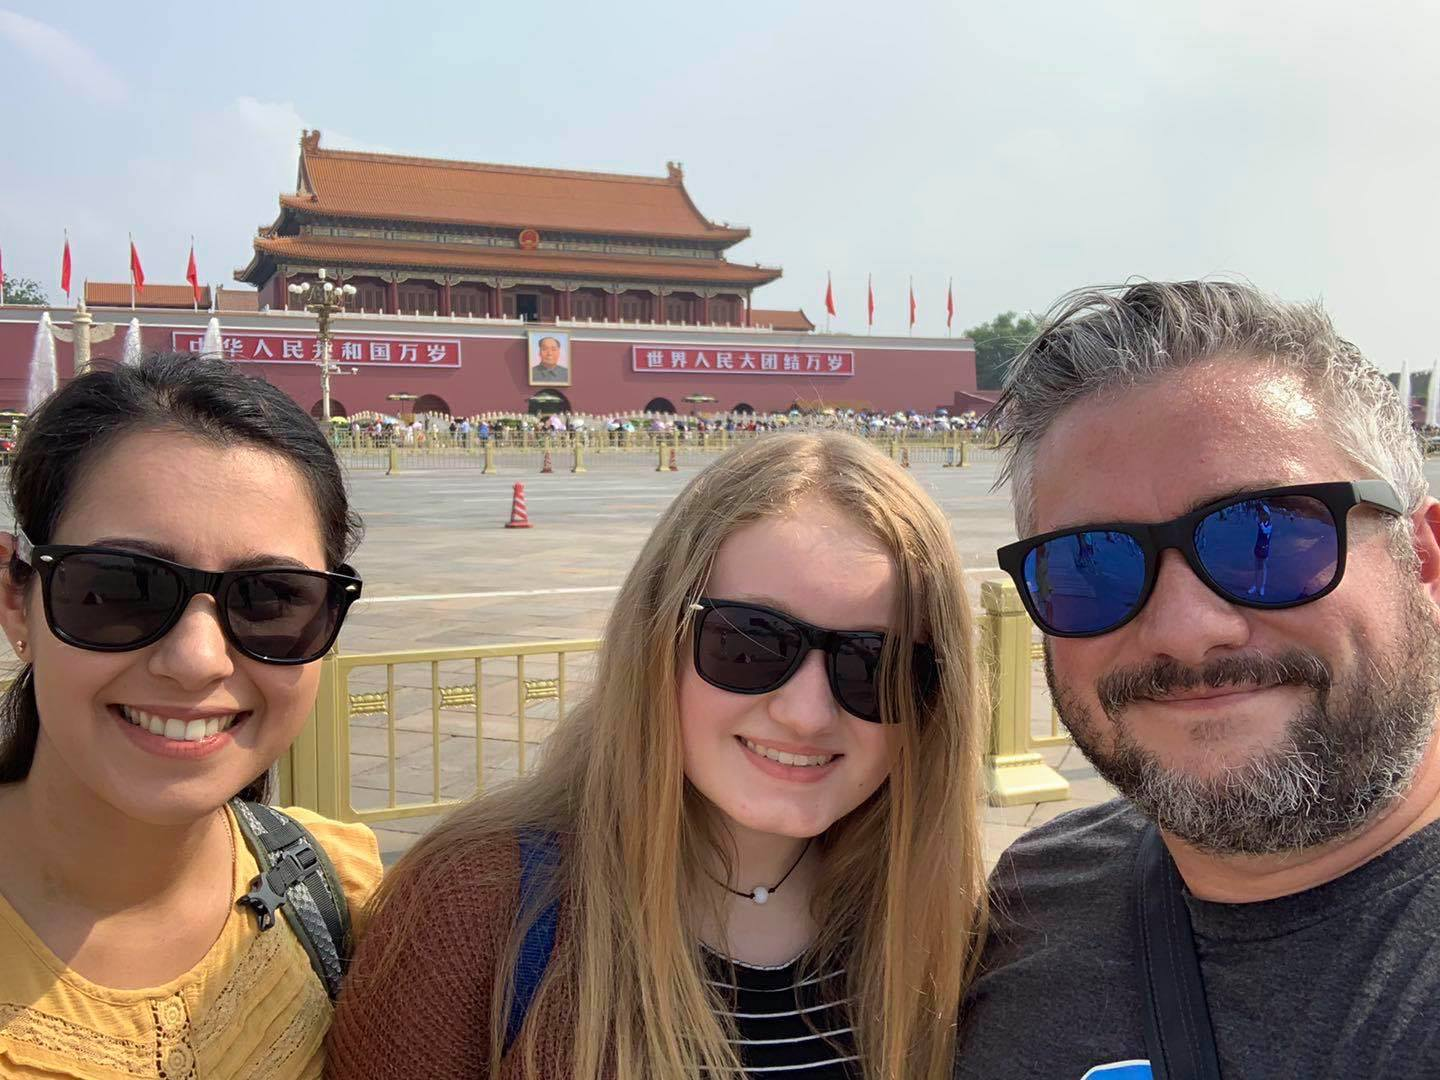 Day 2: Tiananmen Square, Forbidden City & The Great Wall / China